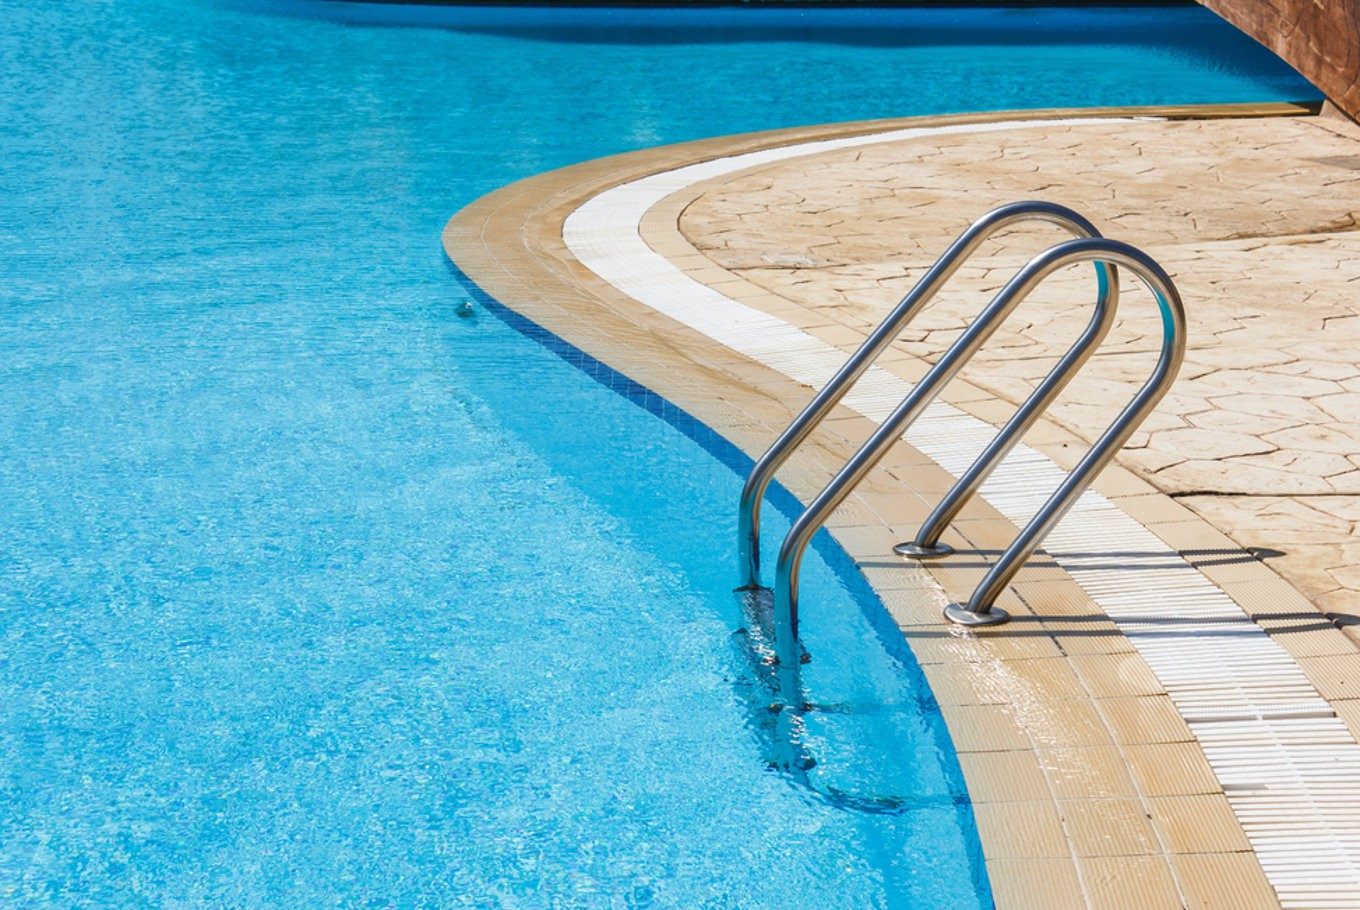 Refresh at these swimming pools in jakarta lifestyle the jakarta post for Swimming pool salt vs chlorine